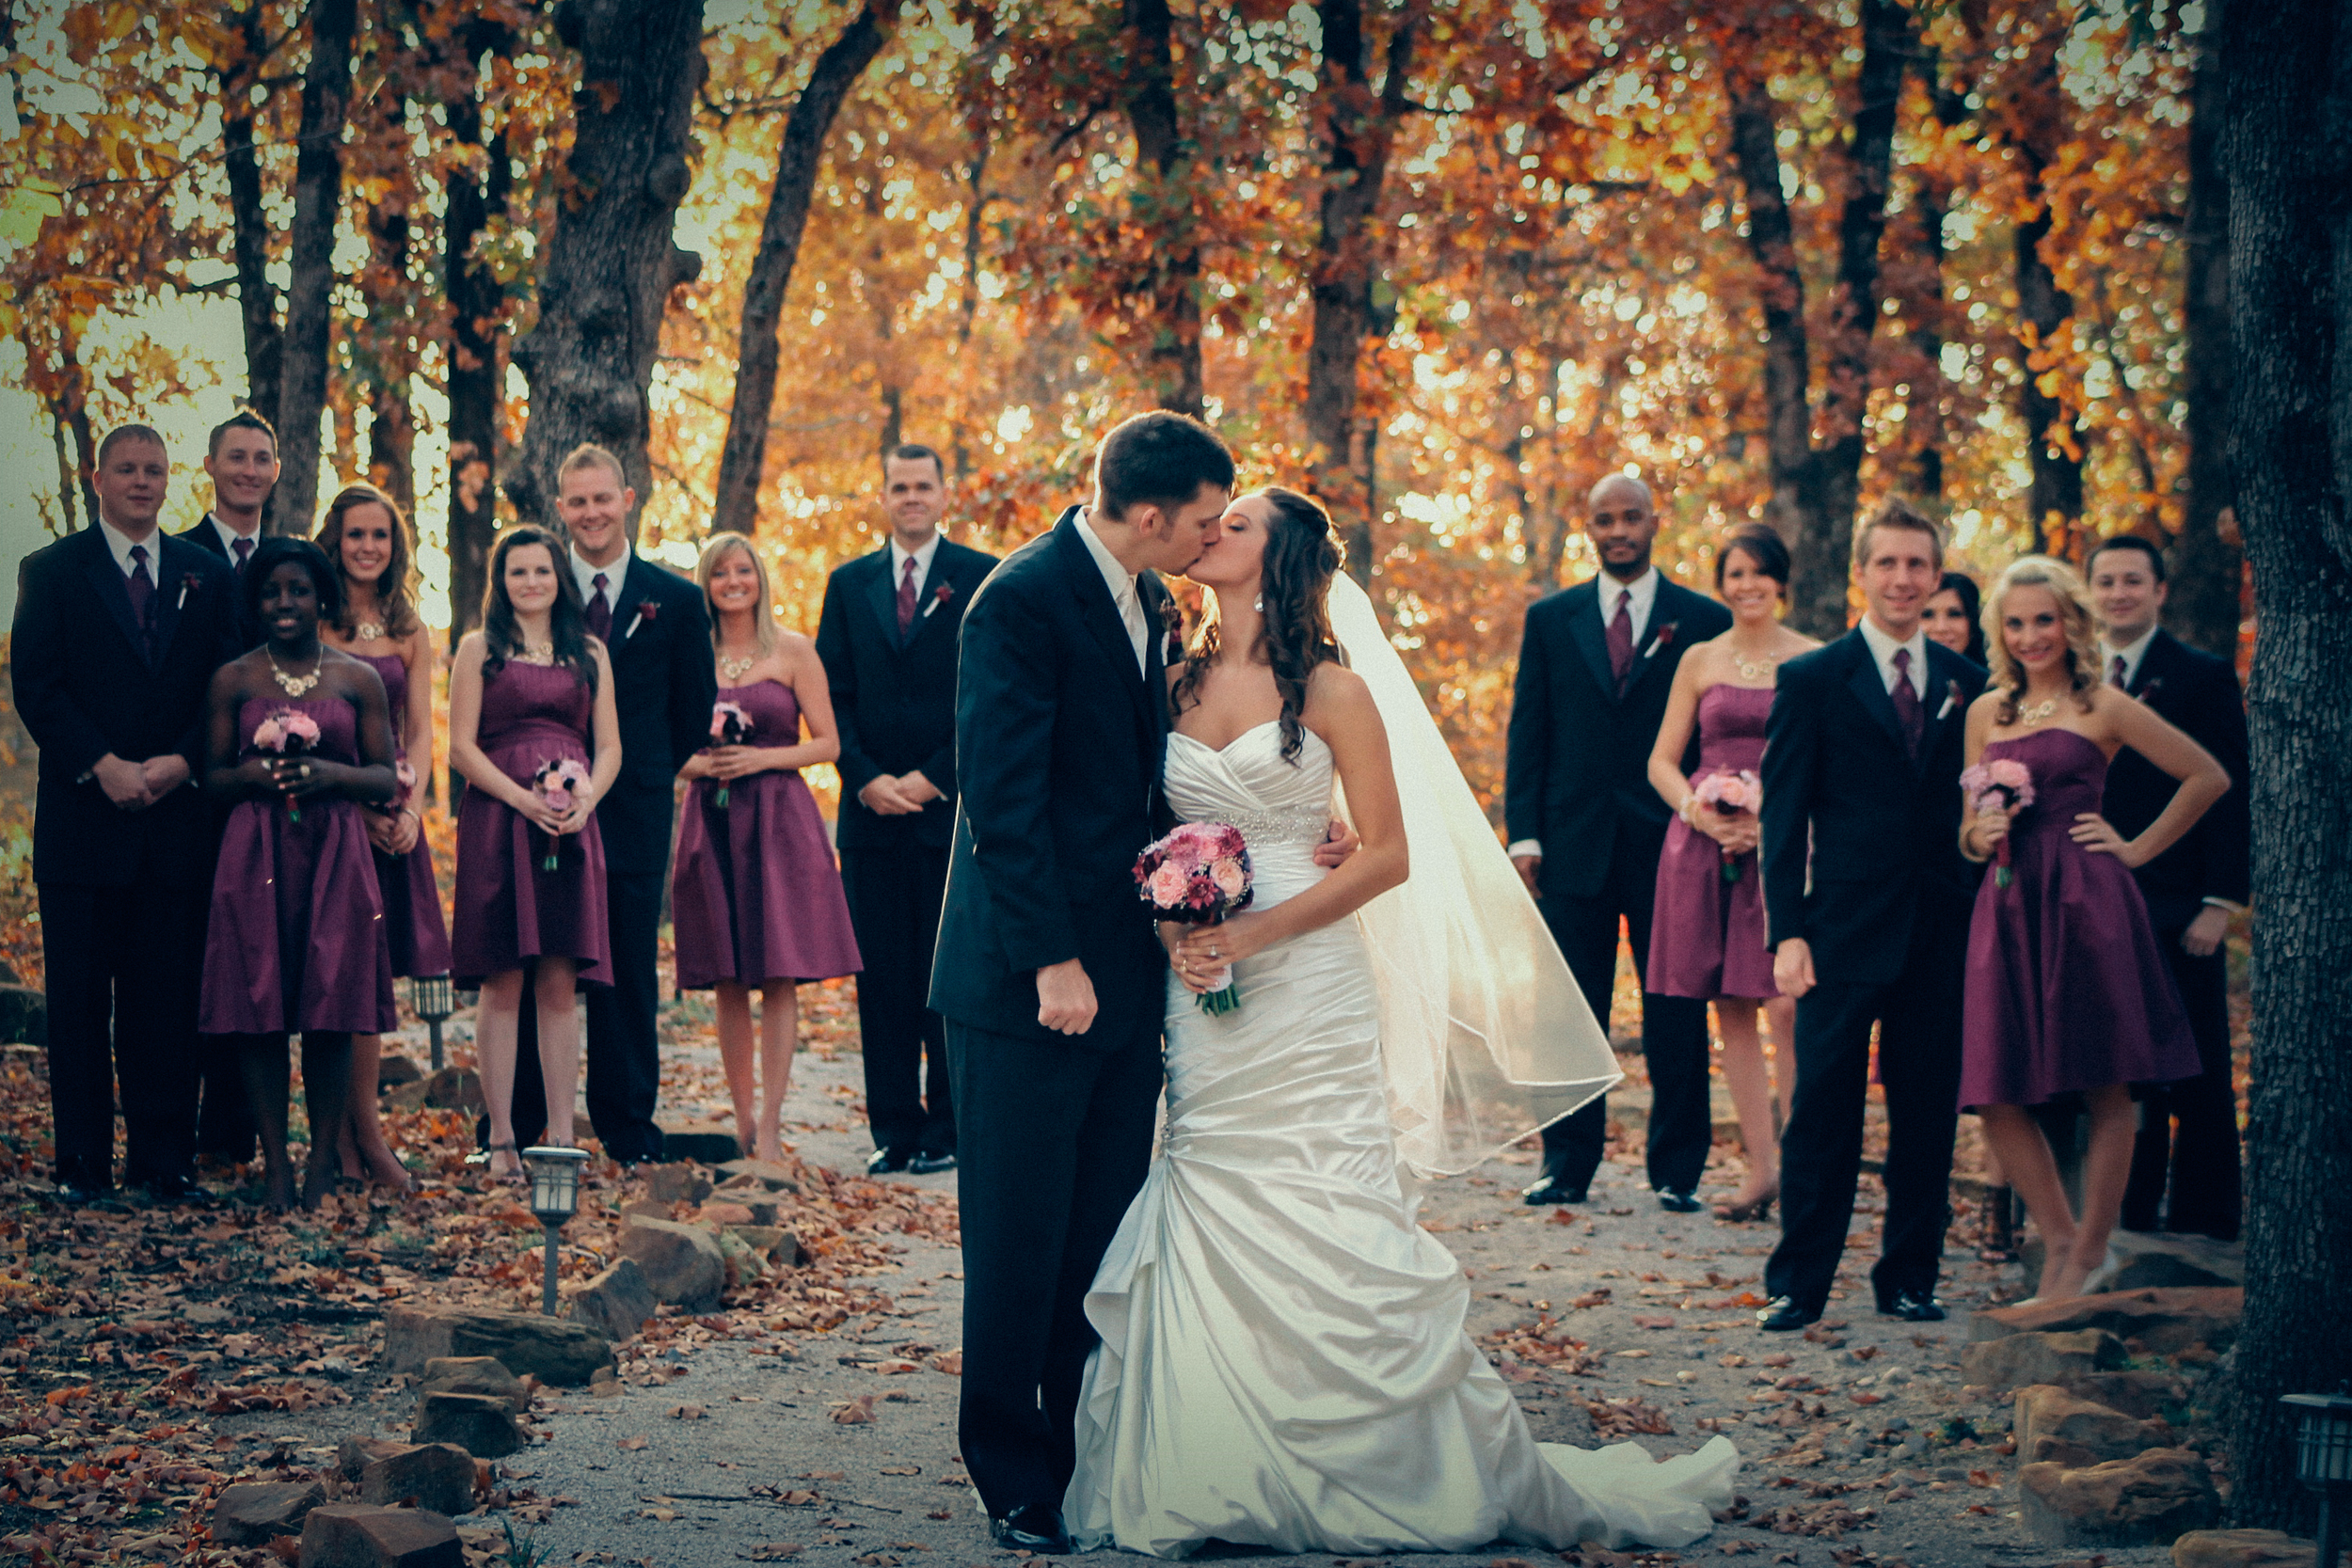 Chad and Stacie | Tulsa Wedding | The picture people (26 of 31).jpg